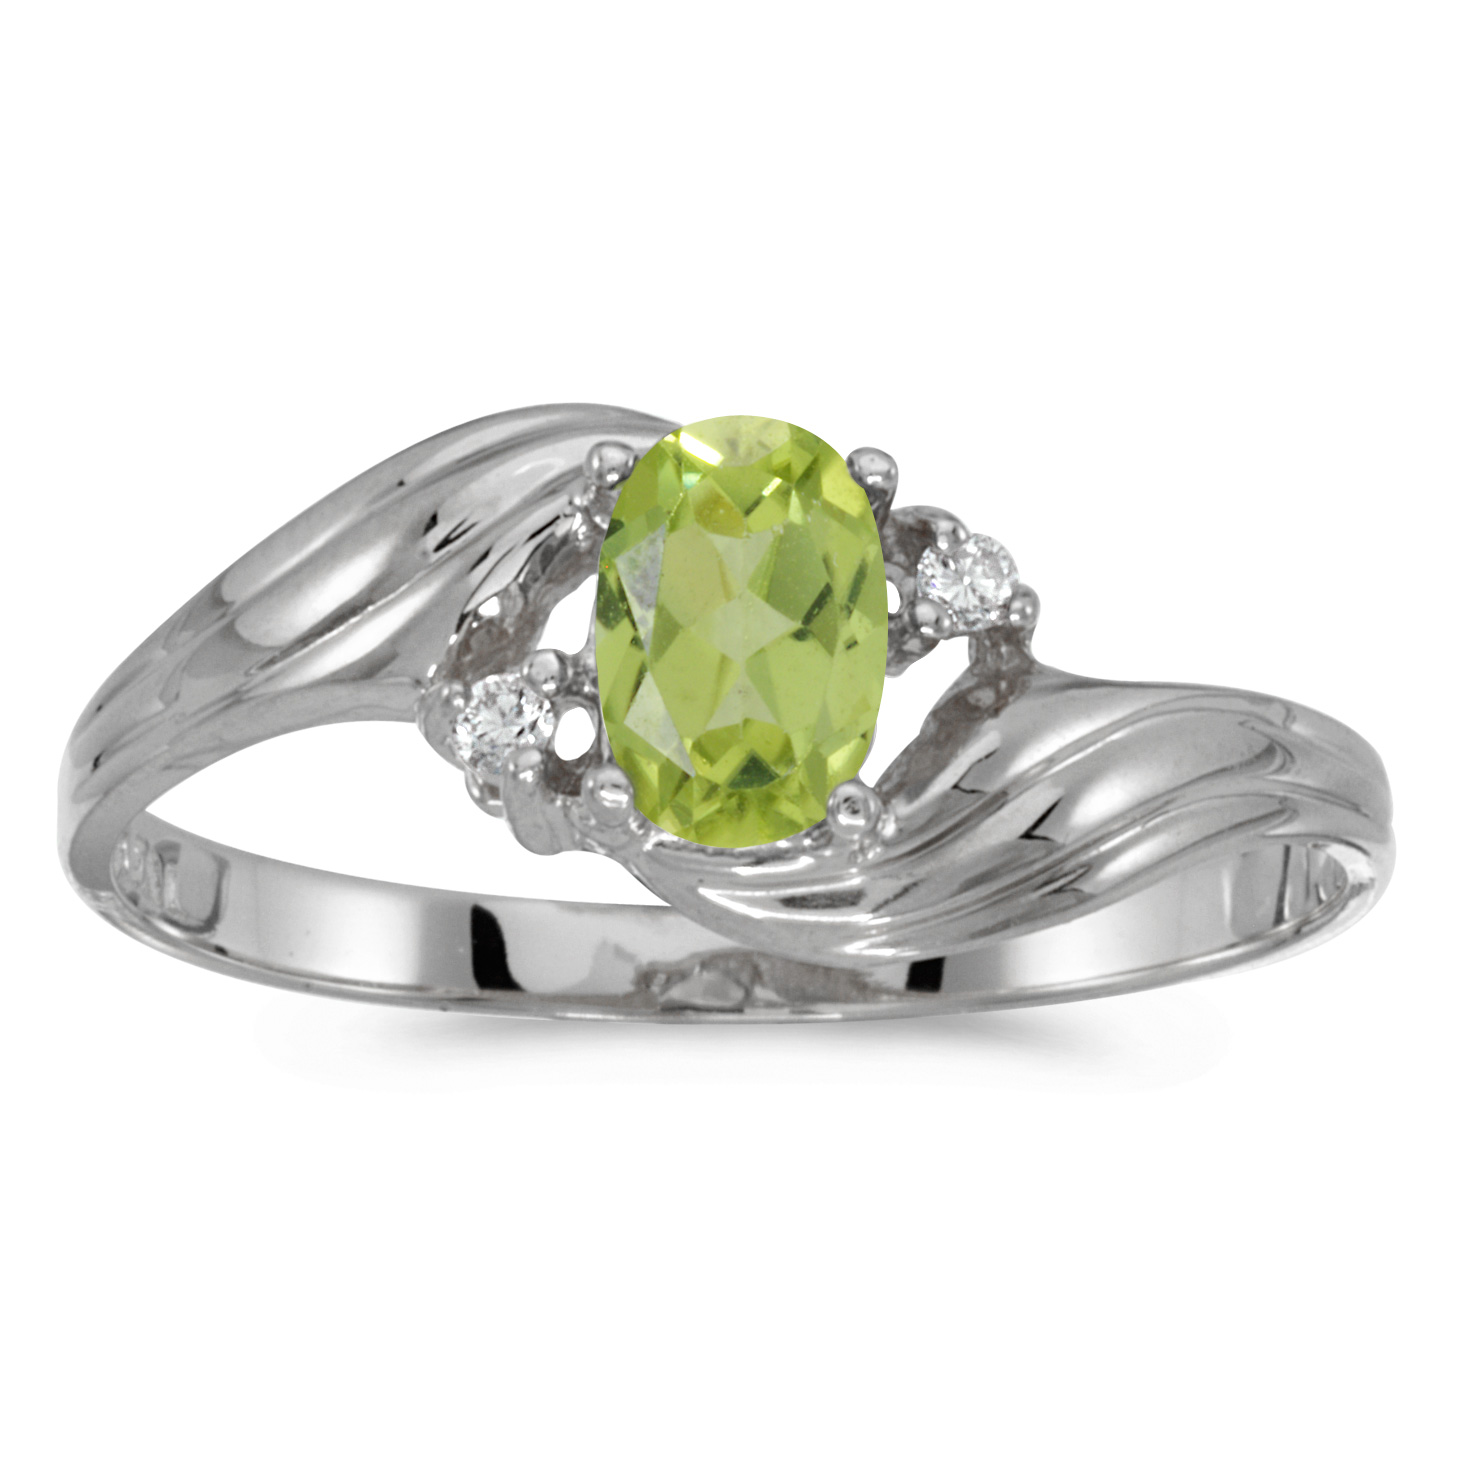 14k White Gold Oval Peridot And Diamond Ring by